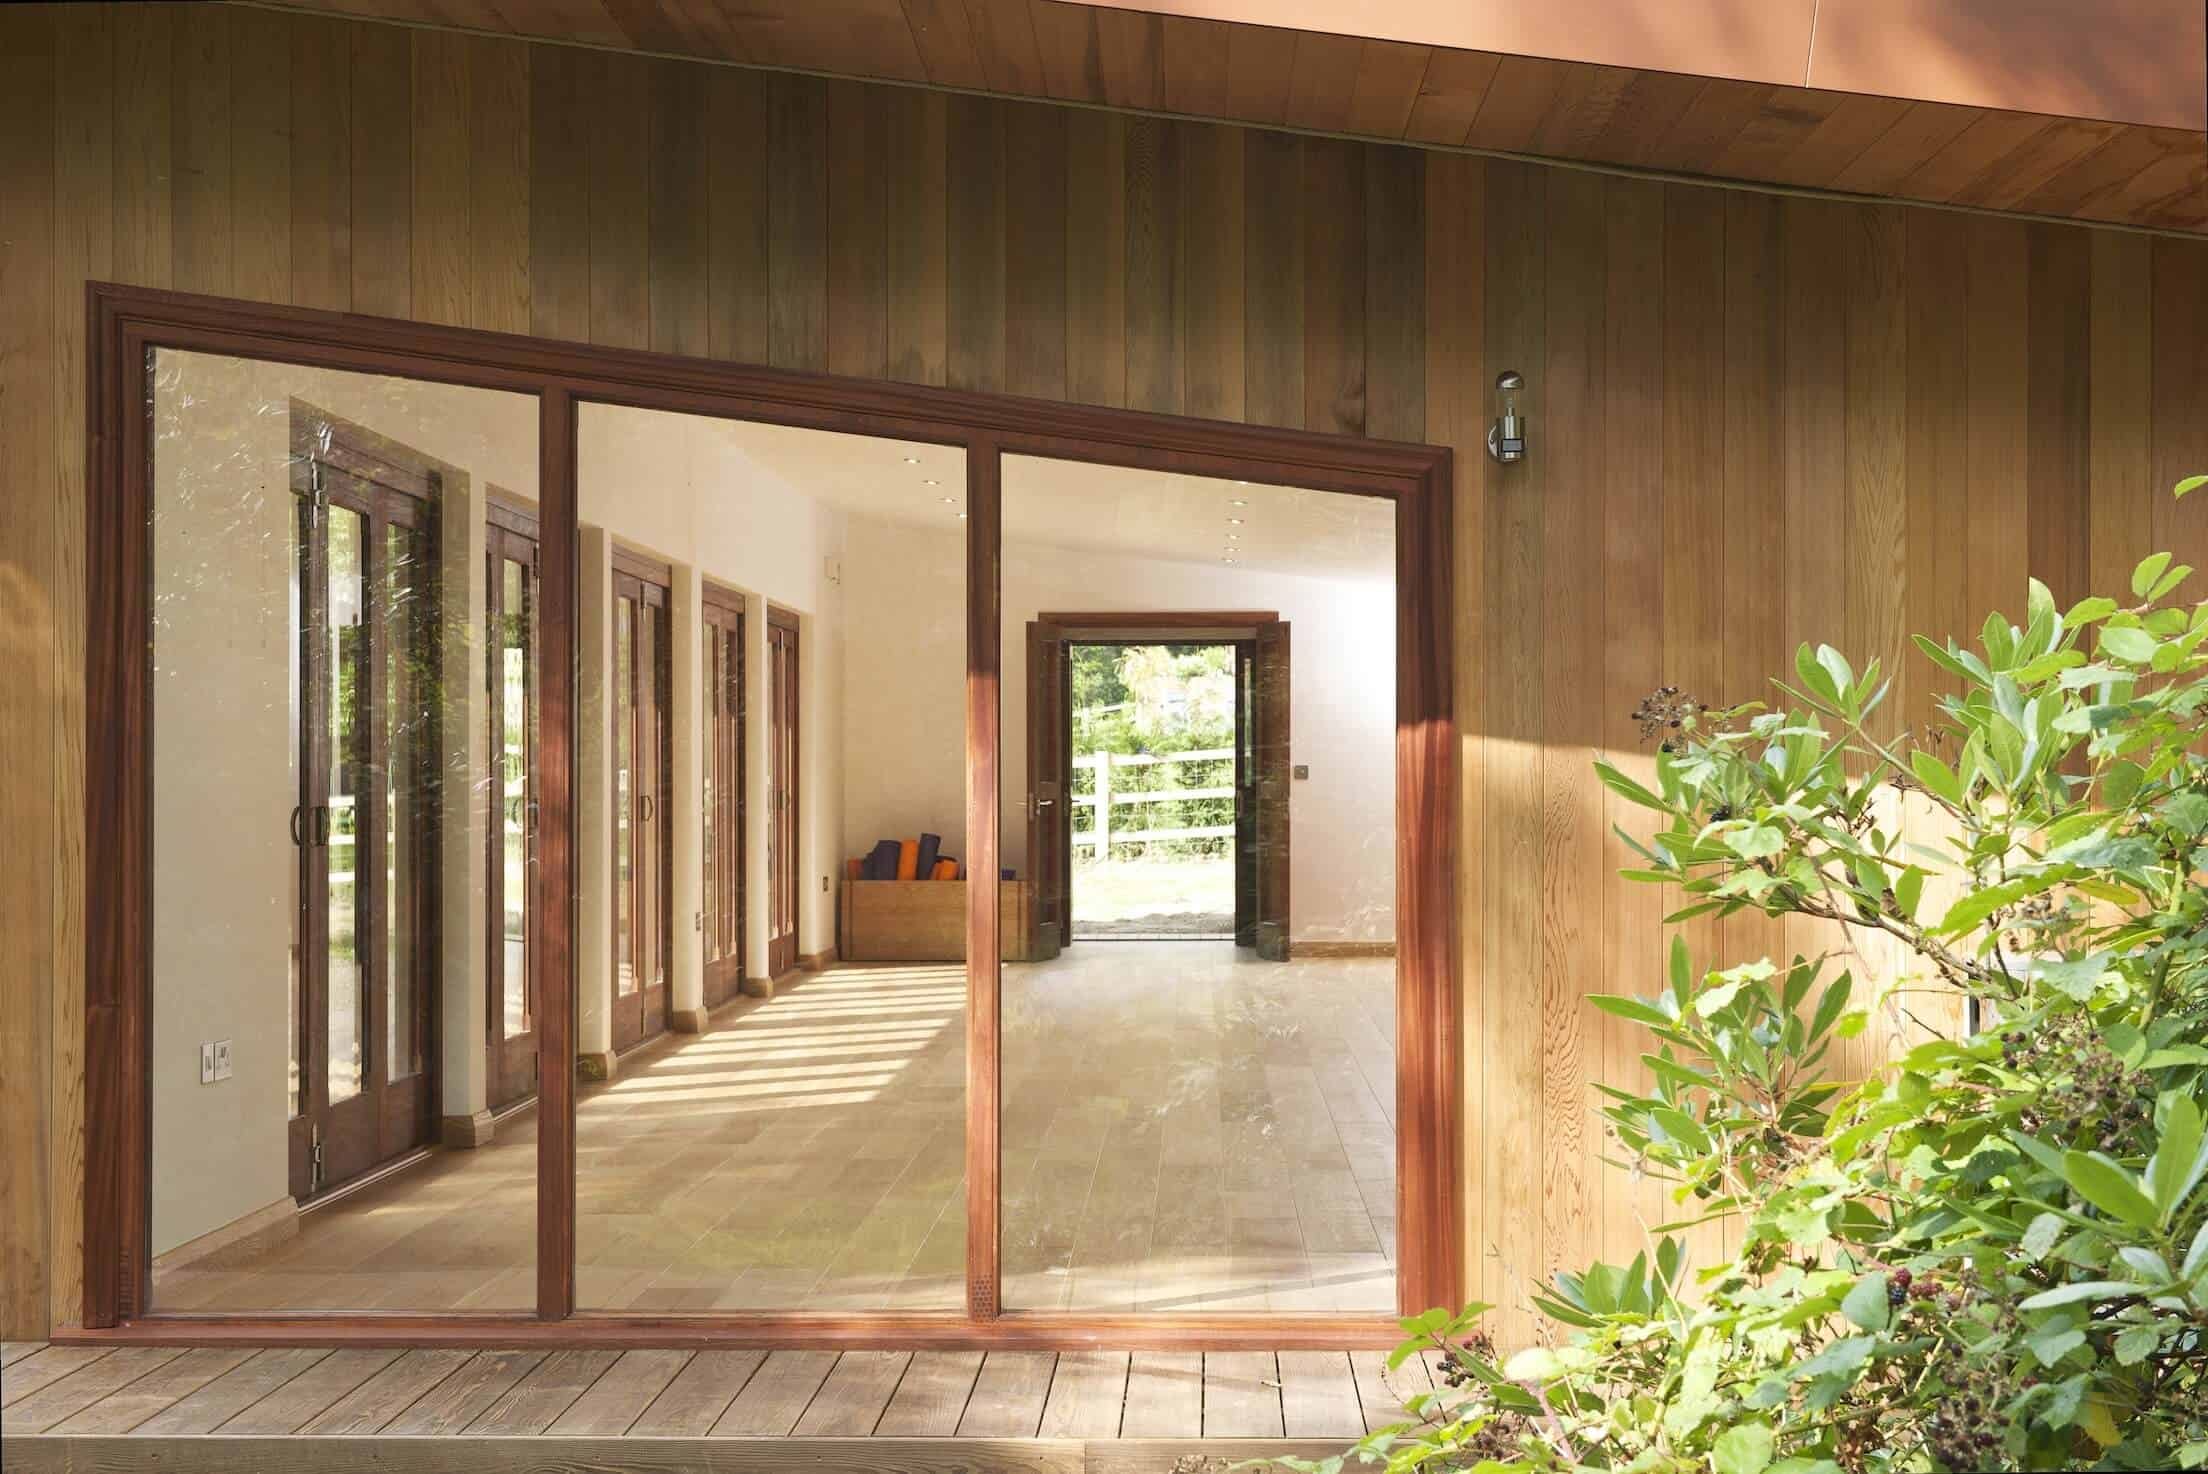 From the side, we see through full height windows clear across the studio, to a pair of doors at the opposite end.